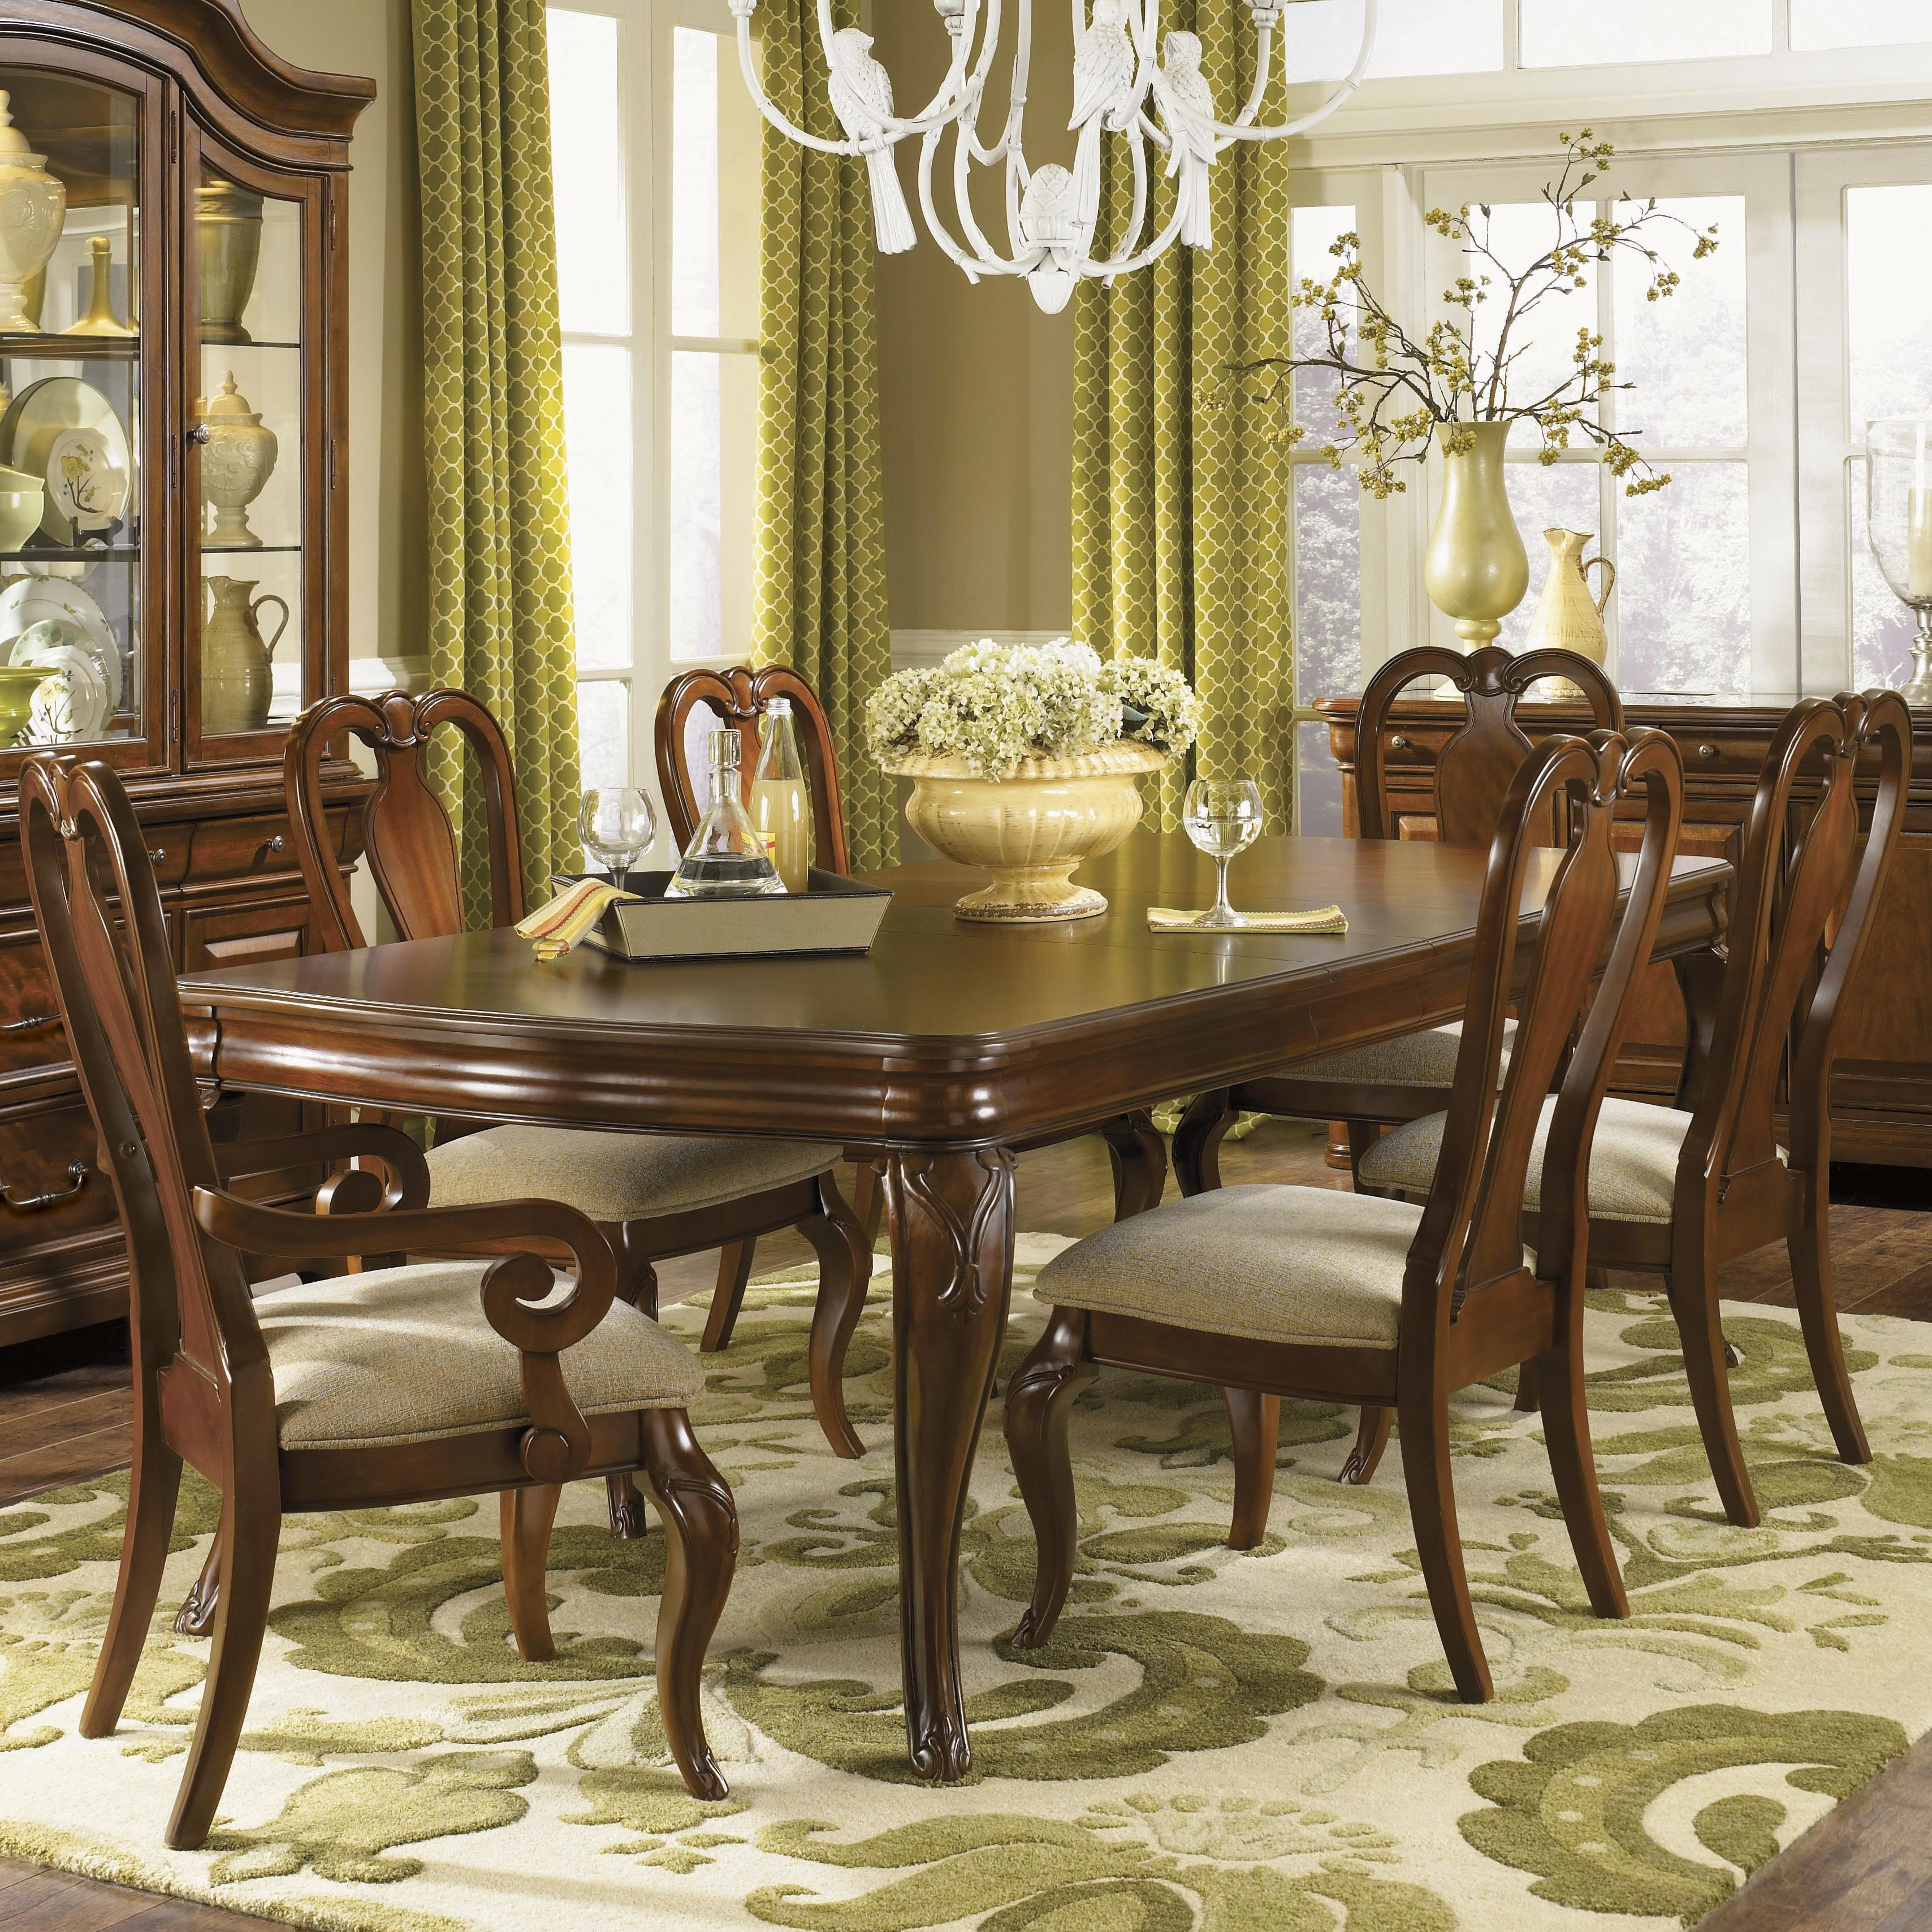 Seven Piece Dining Set With Queen Anne Chairs By Legacy